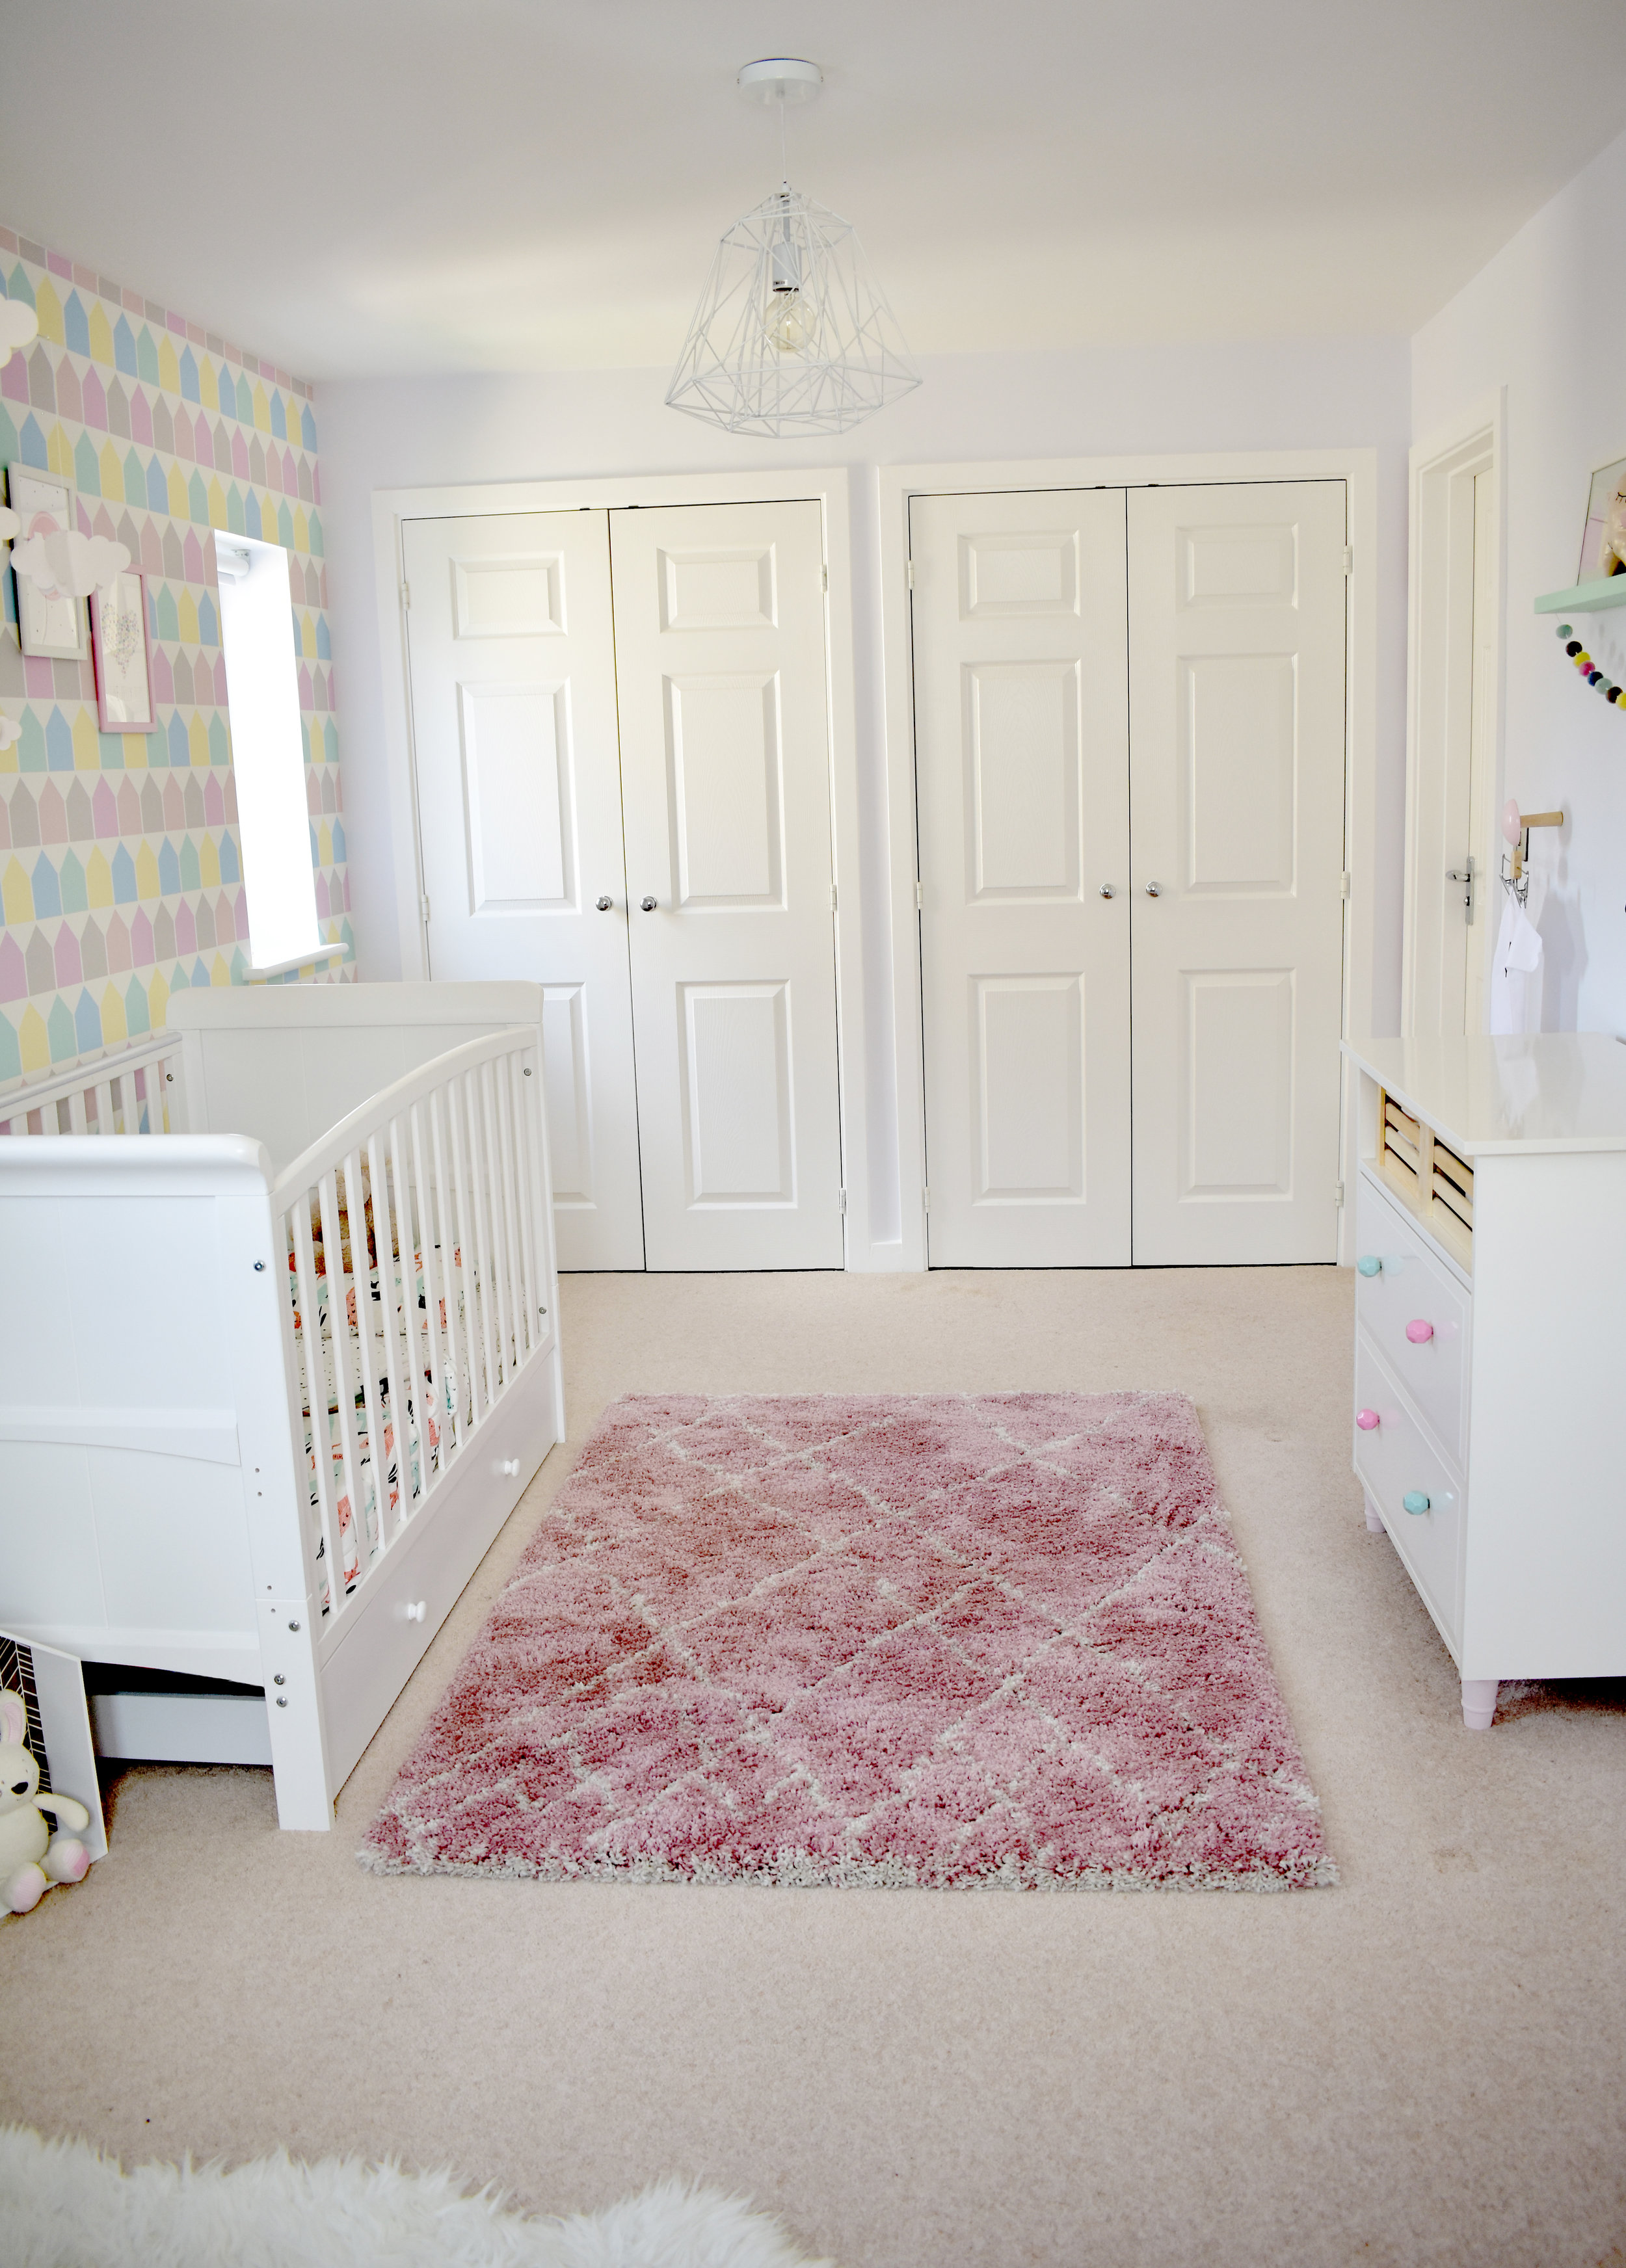 It is a long and narrow room so I have placed the furniture against the wall to allow for space for tummy time and play time on this soft  Berber style rug .